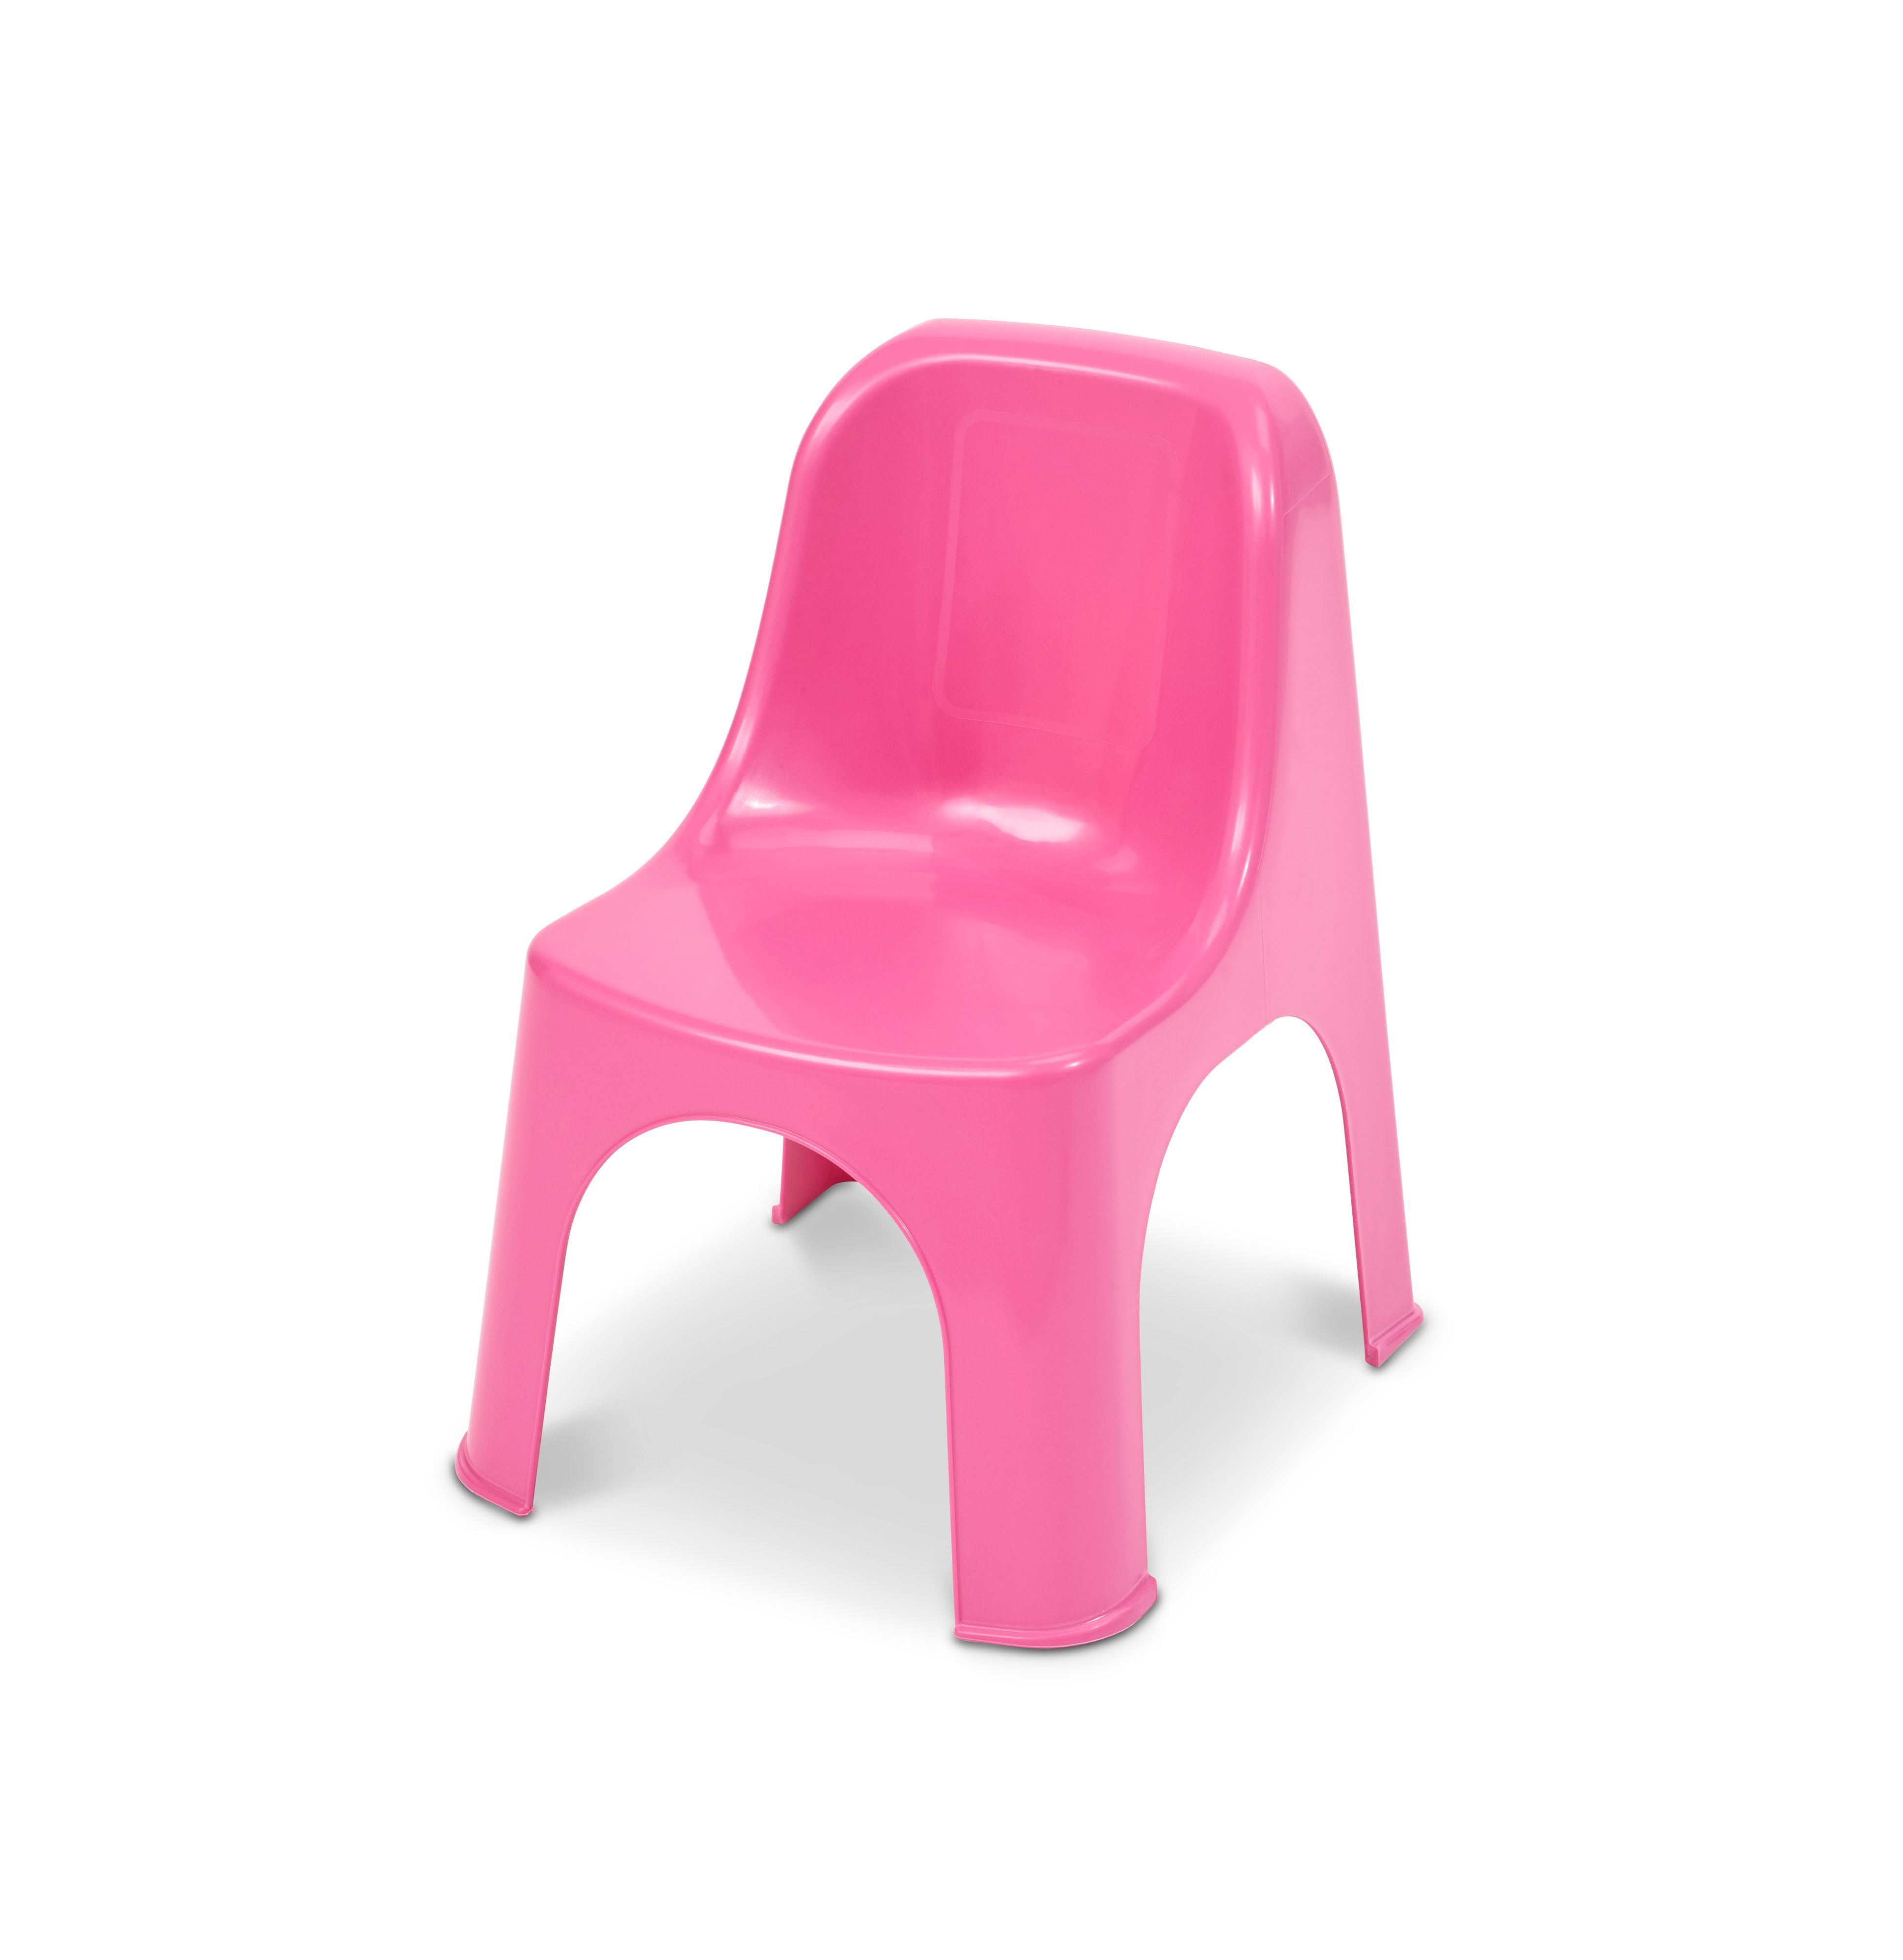 Plastic Kids Chairs Noli Pink Plastic Kids Chair Departments Diy At B Q Garden